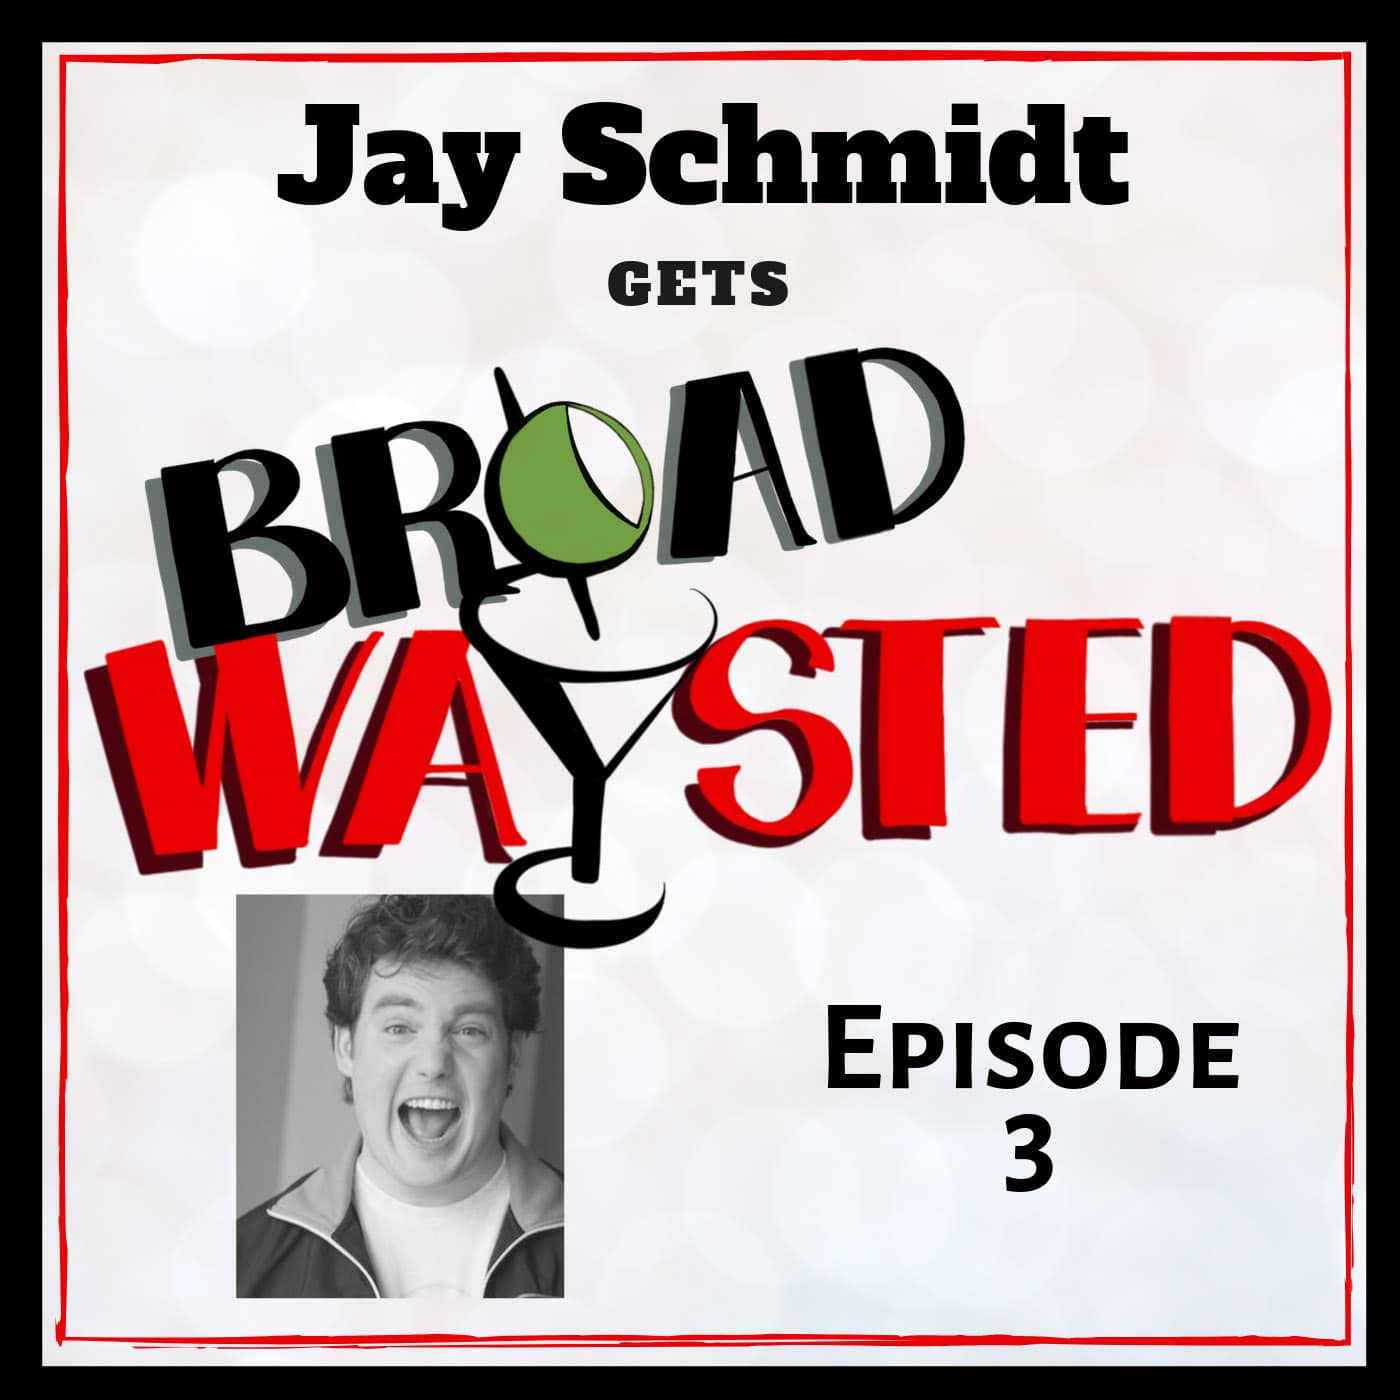 Broadwaysted Ep 3 Jay Schmidt